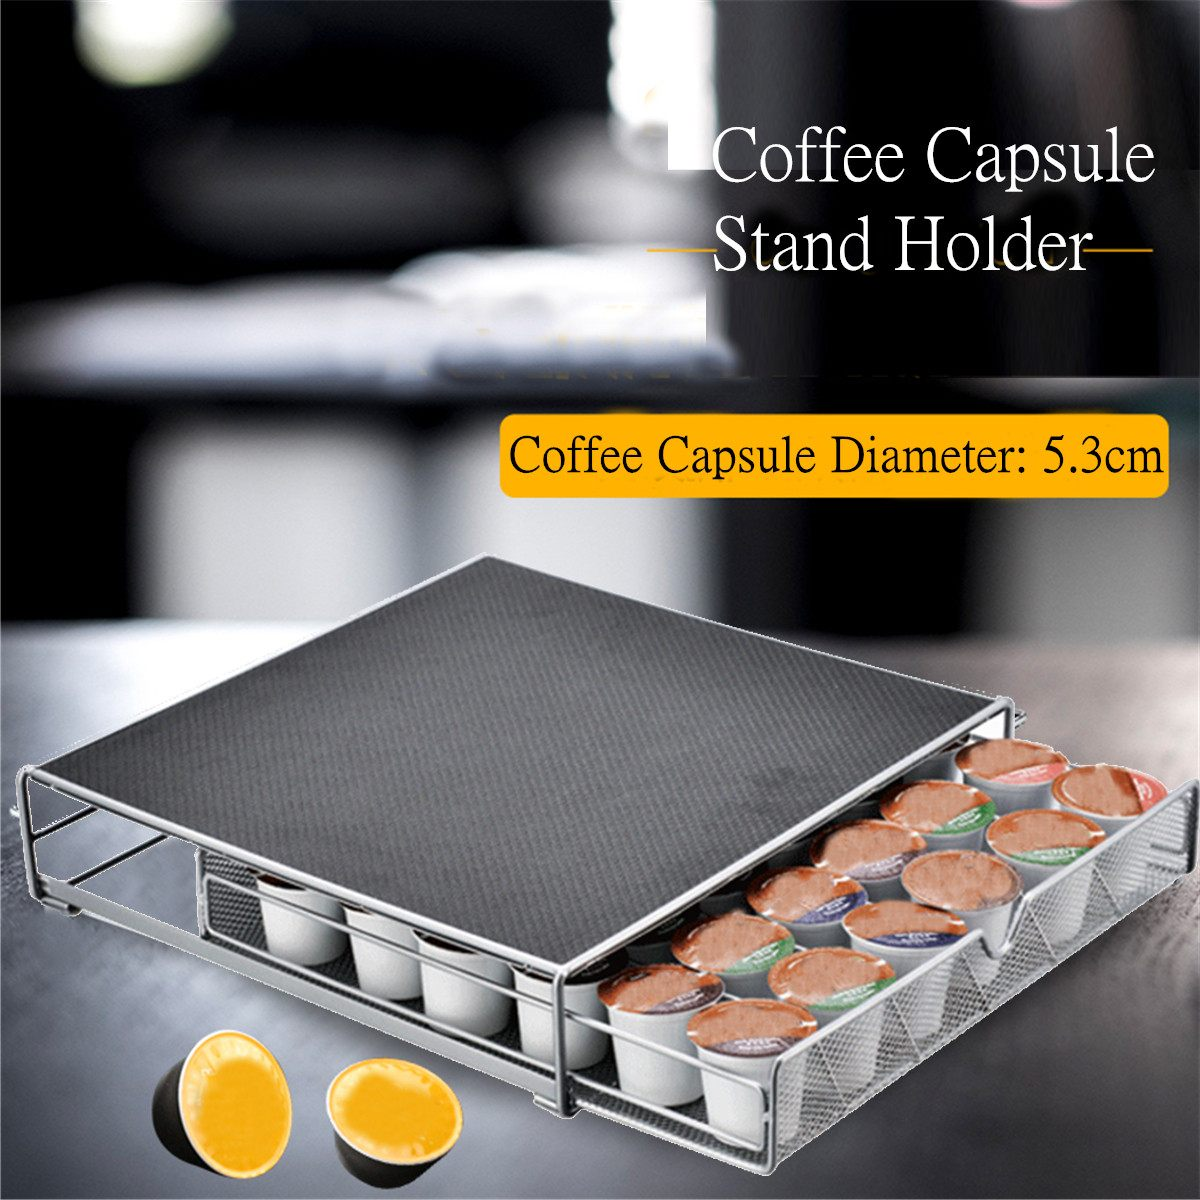 Home Coffee Capsule Holder Stand Tower Racks Storage Shelves Organizer Kitchen Accessories Storage Capsule Office Holder Drawer